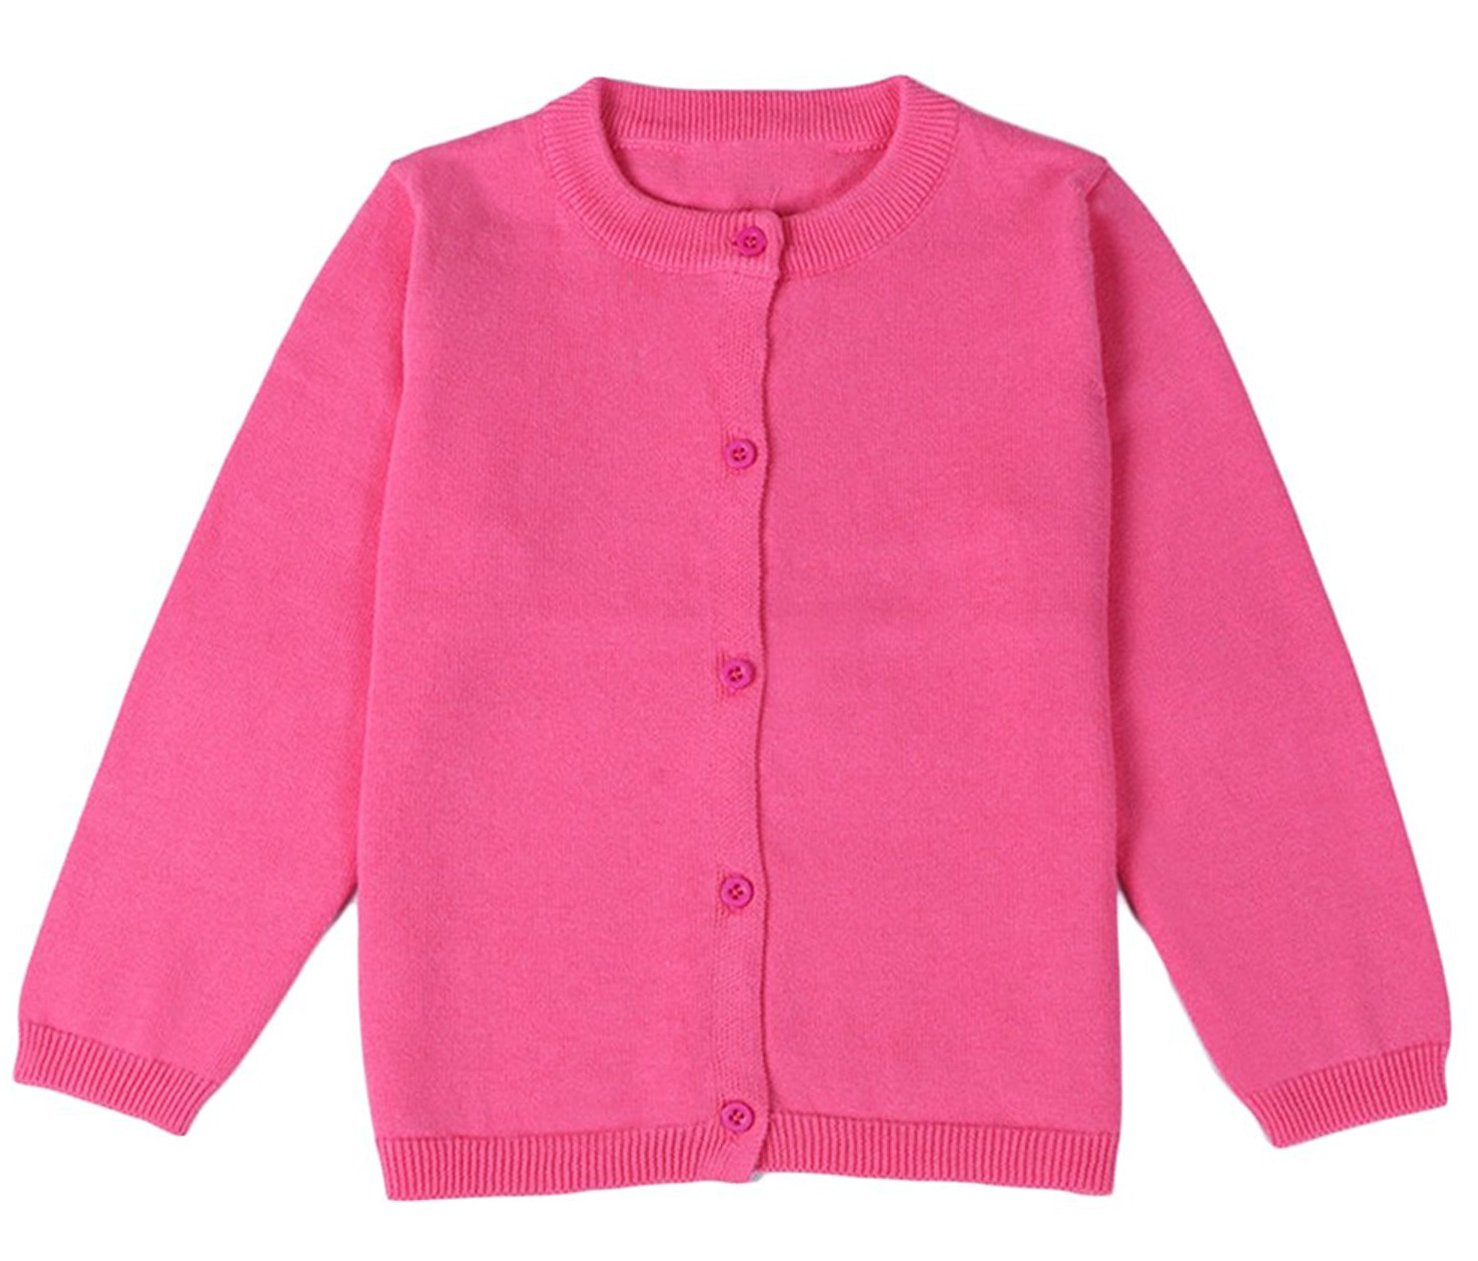 Guandiif Girls Cardigan Knit Sweaters Long Sleeve Button Front Cotton Knit Sweater 6Y Rose Red